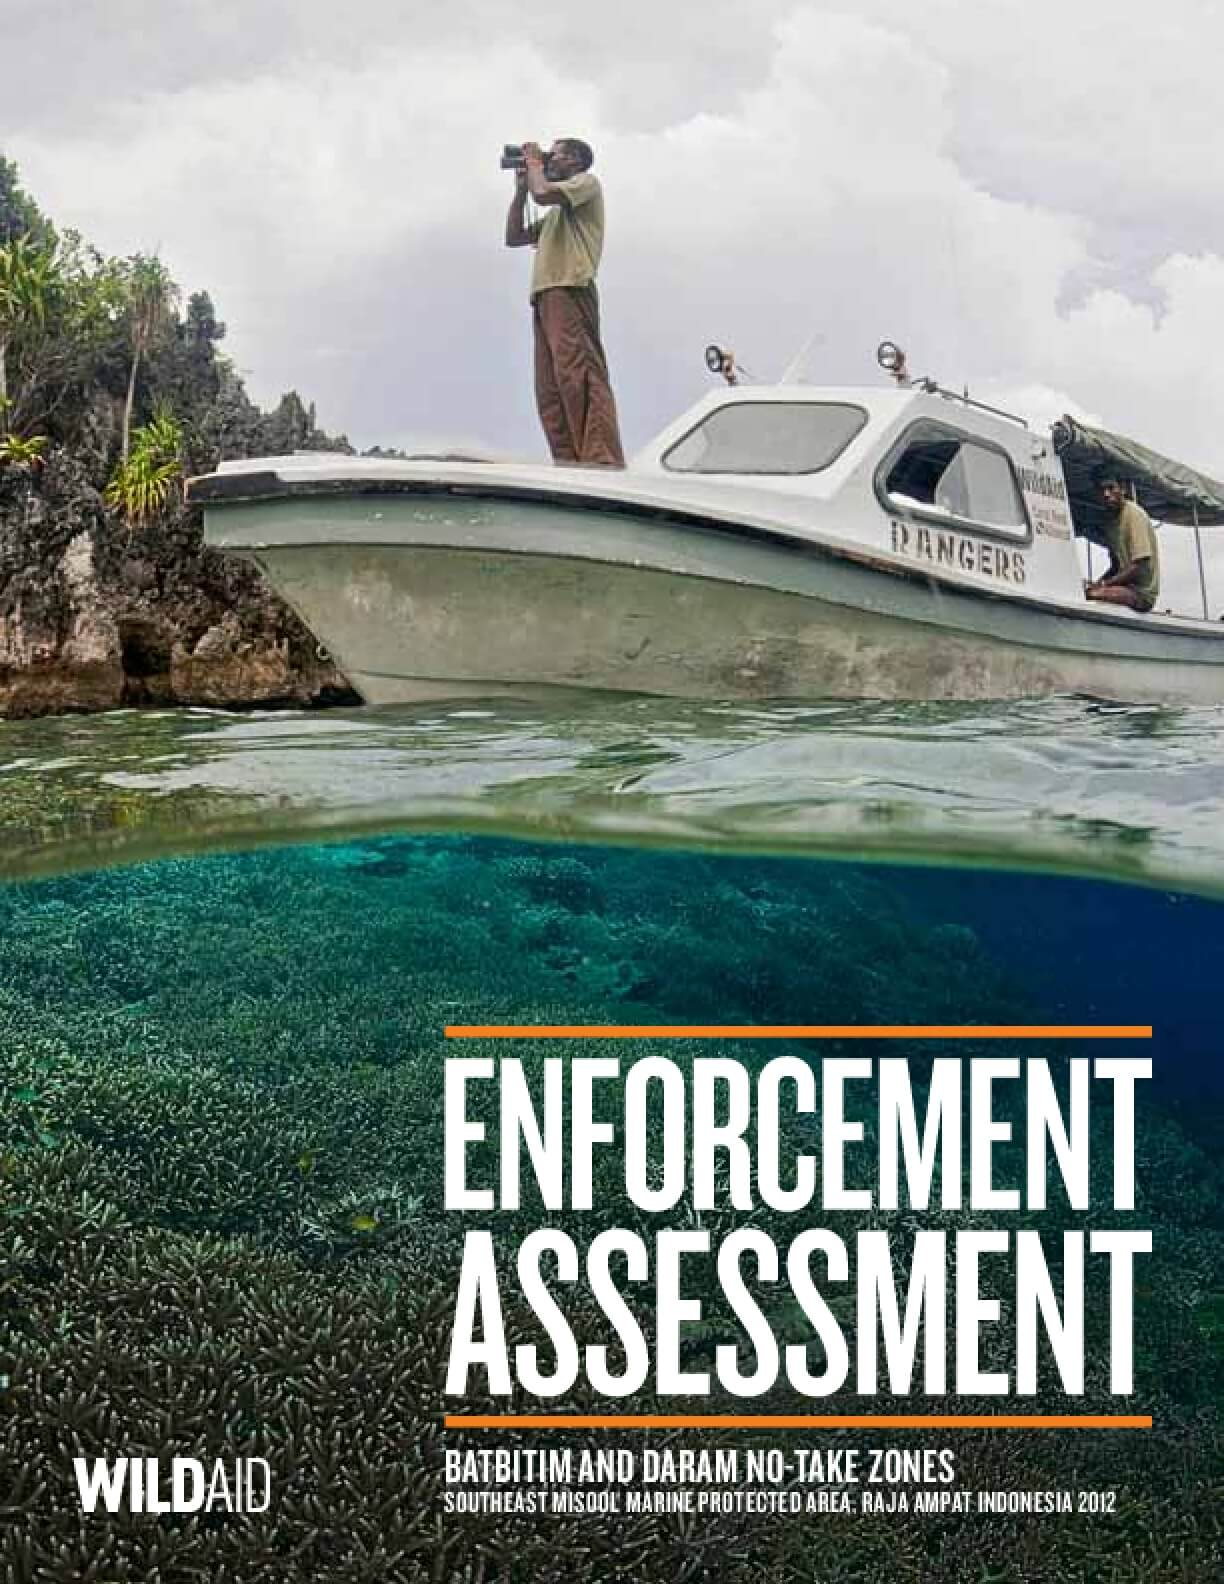 2012 Indonesia Marine Enforcement Report: Batbitim and Daram No-Take Zones. Southeast Misool Marine Protected Area, Raja Ampat Indonesia 2012